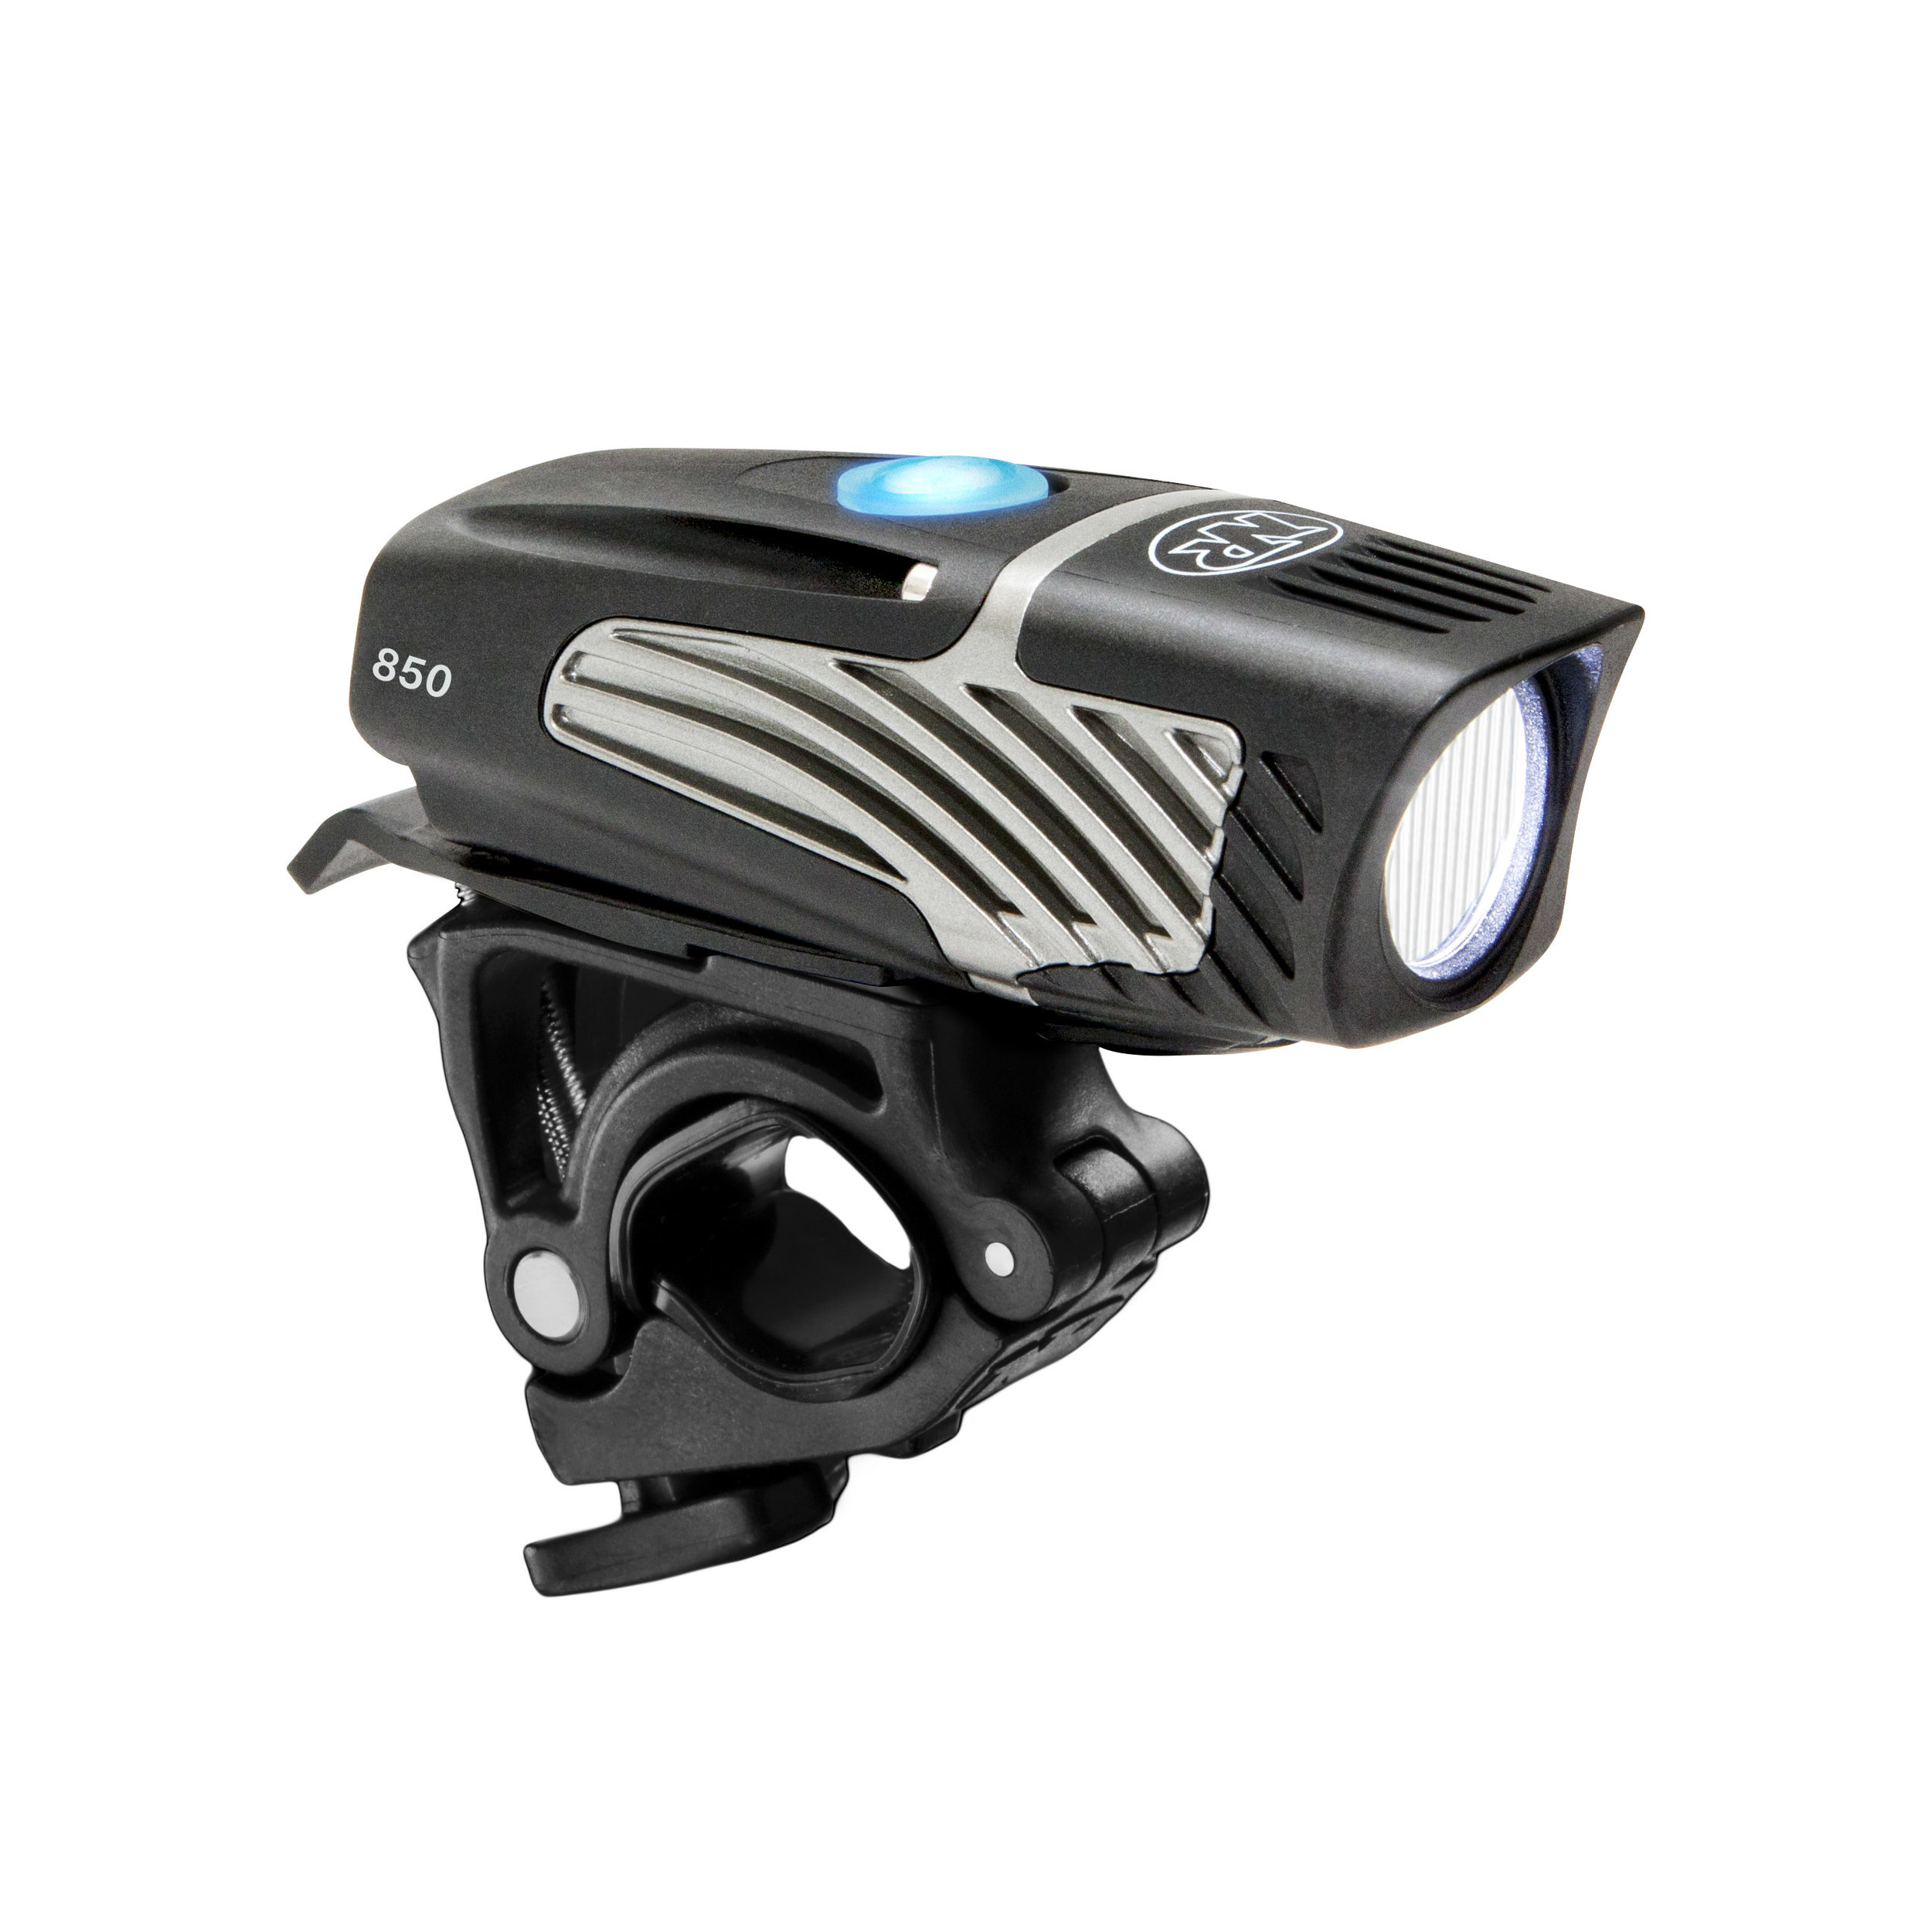 Lumina Micro 850 - SGD $65 | Specifications: Here